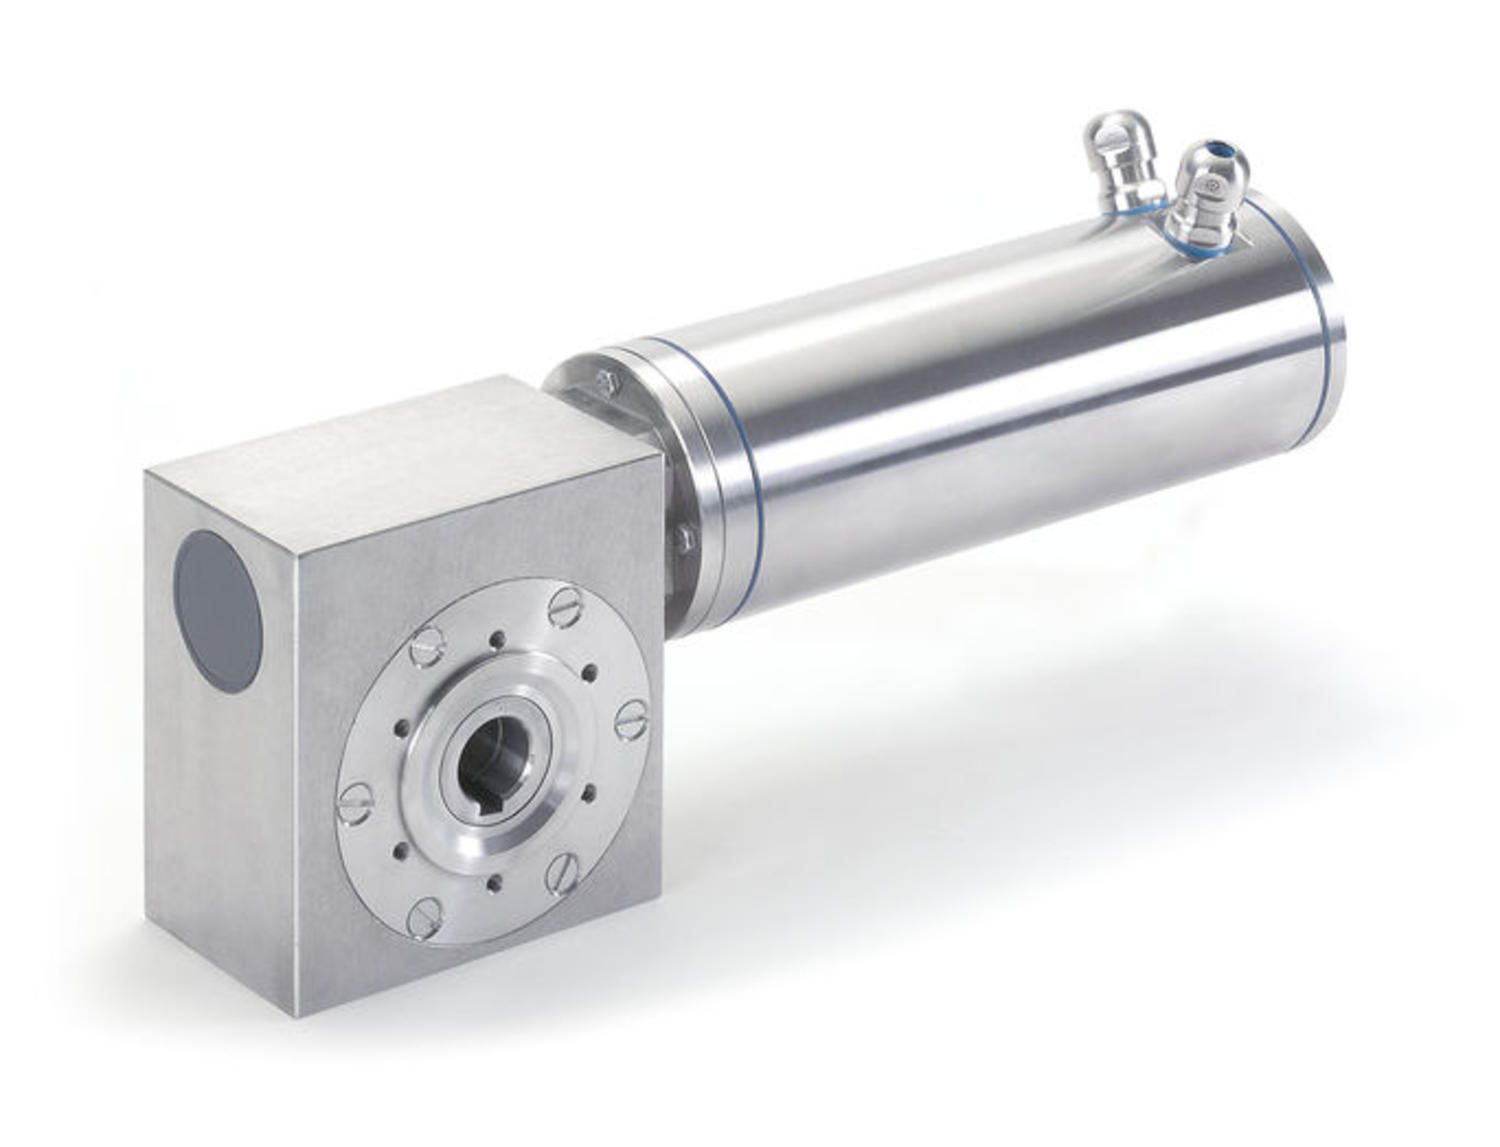 SXCFSS stainless steel worm gear motor